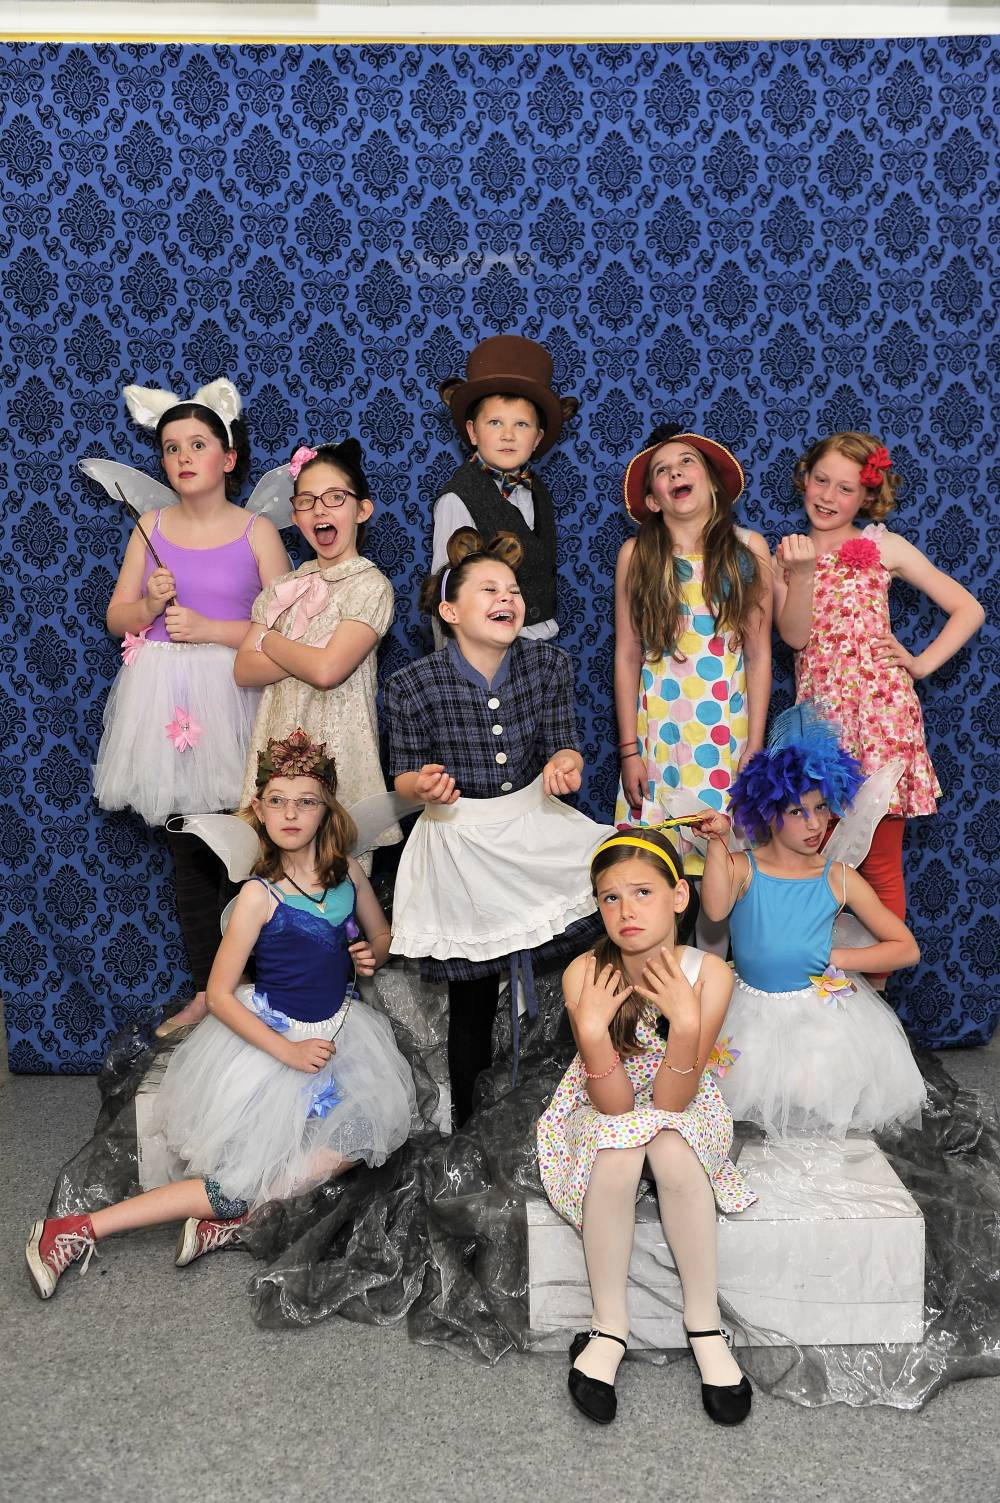 TOP WASHINGTON SUMMER CAMP: The Hi-Liners Musical Theatre is a Top Summer Camp located in Burien Washington offering many fun and enriching camp programs.